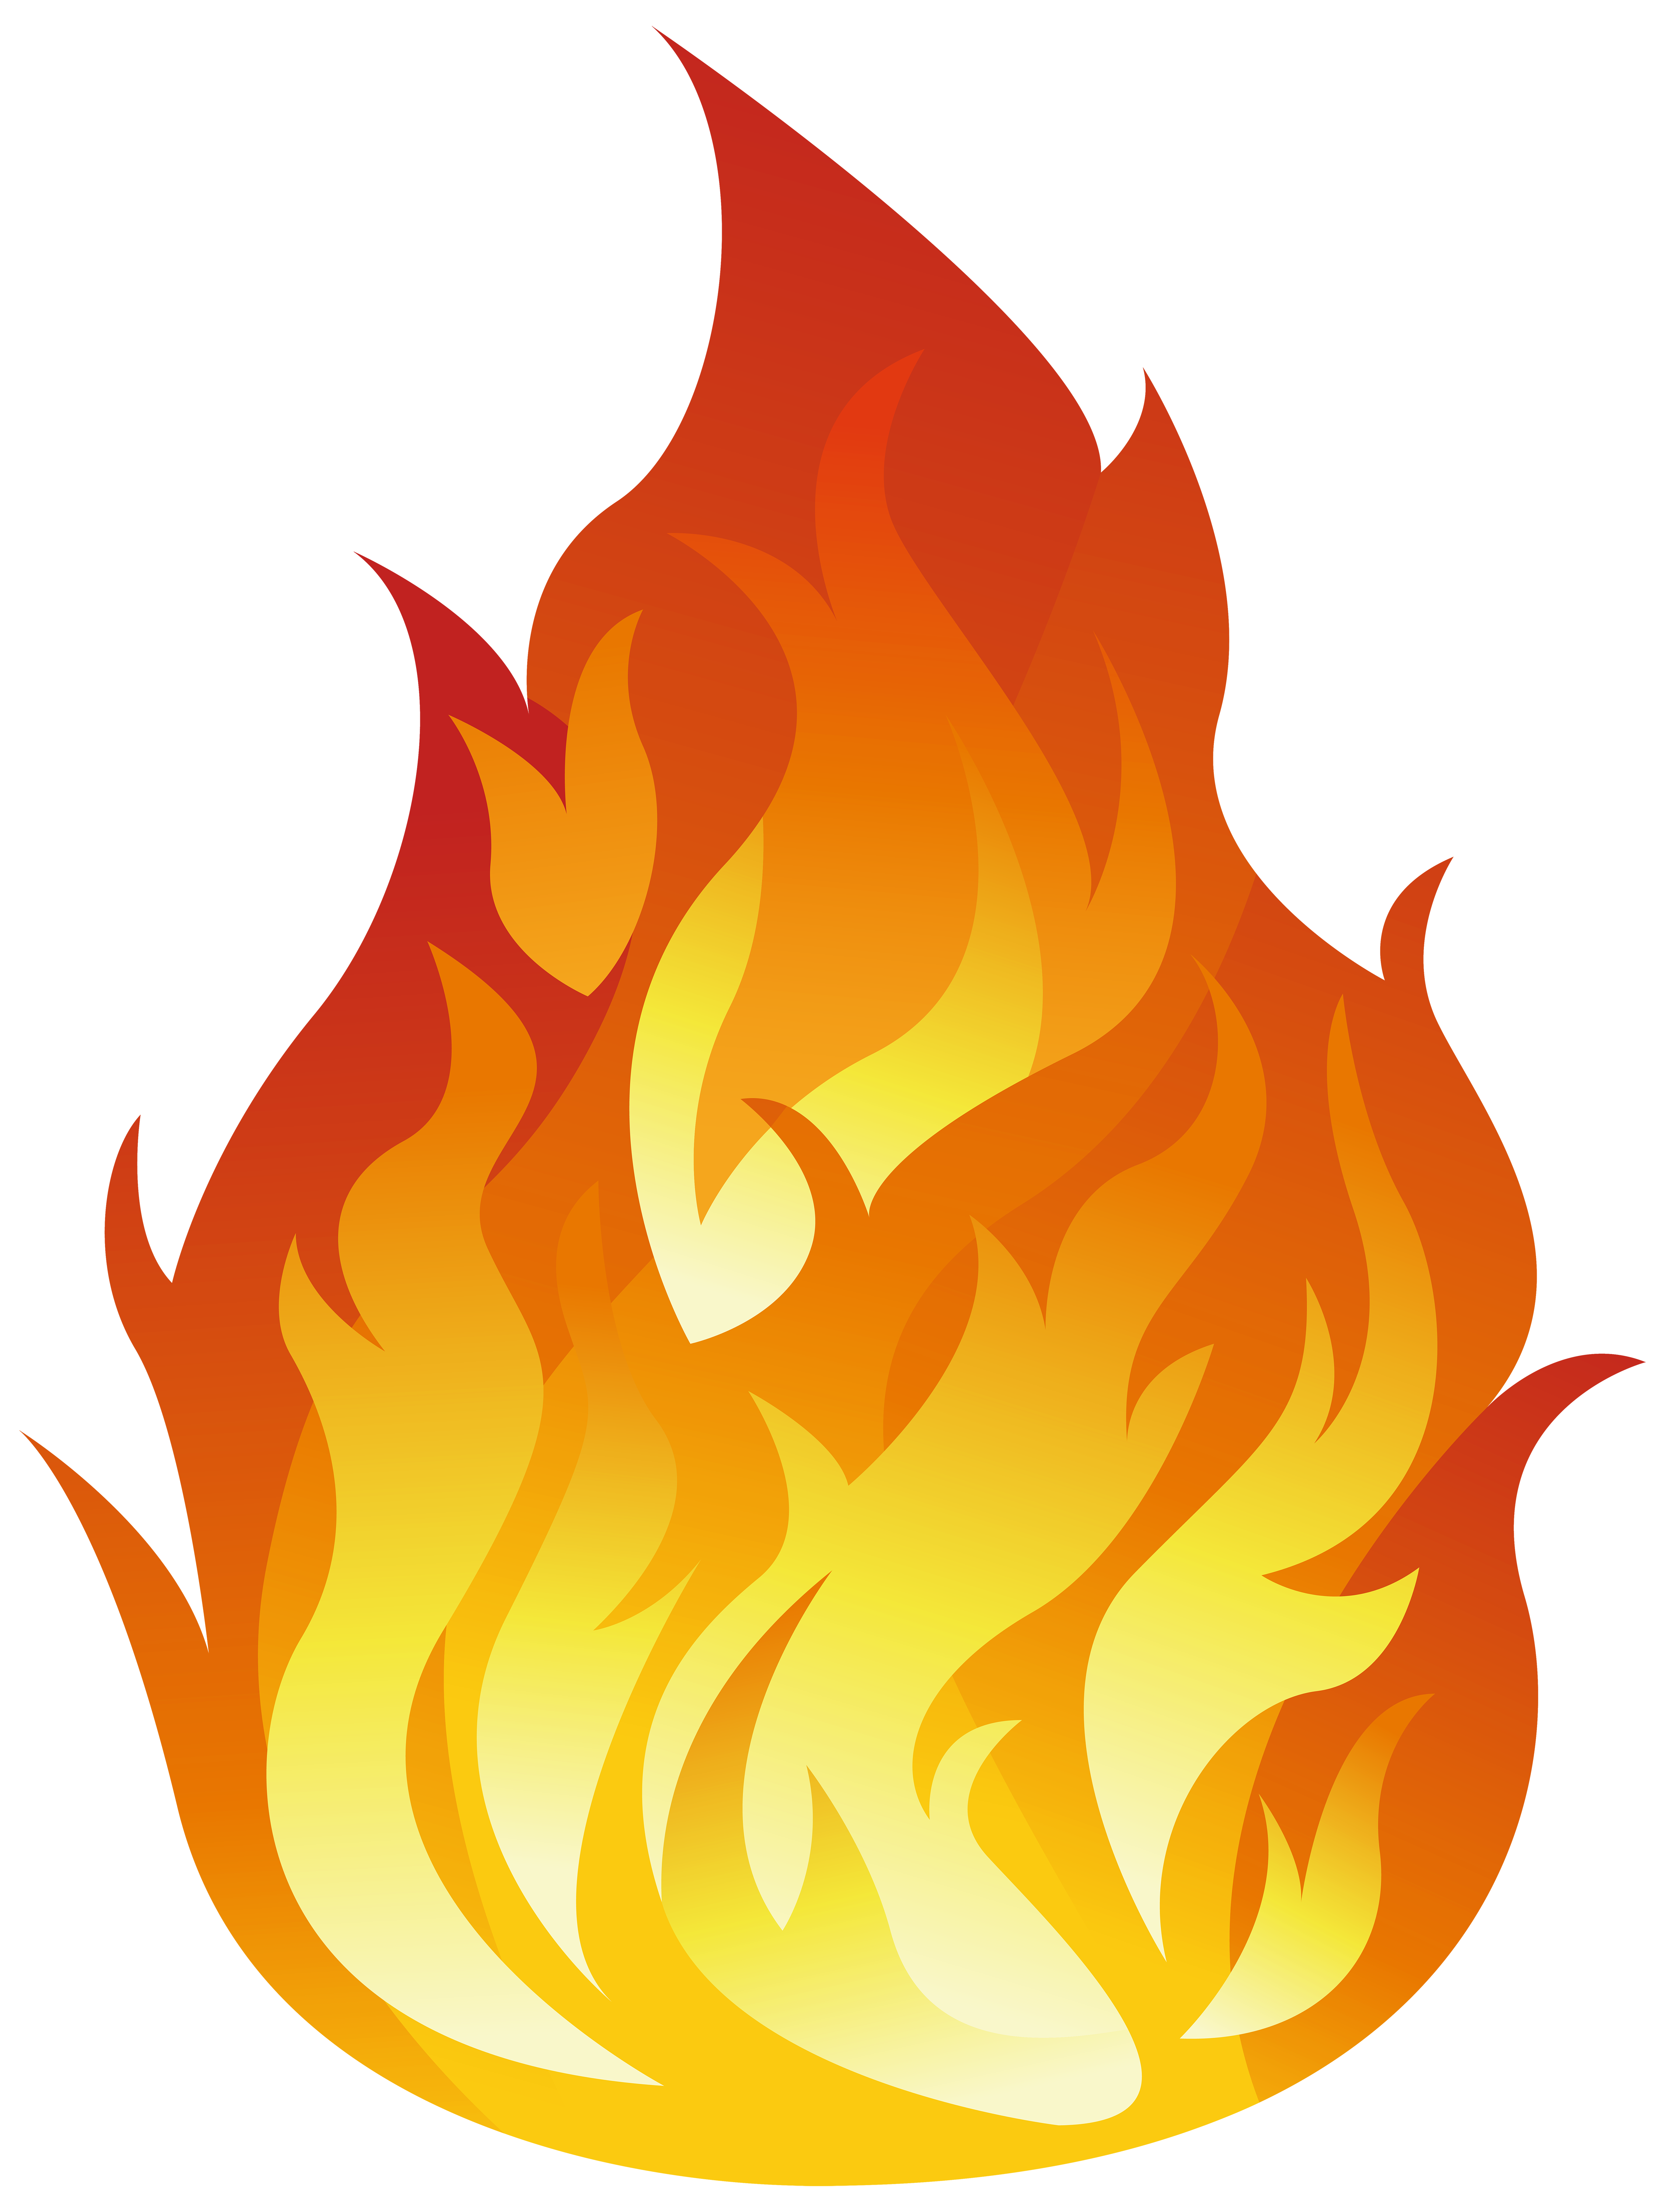 Transparent png clip art. Softball clipart flame